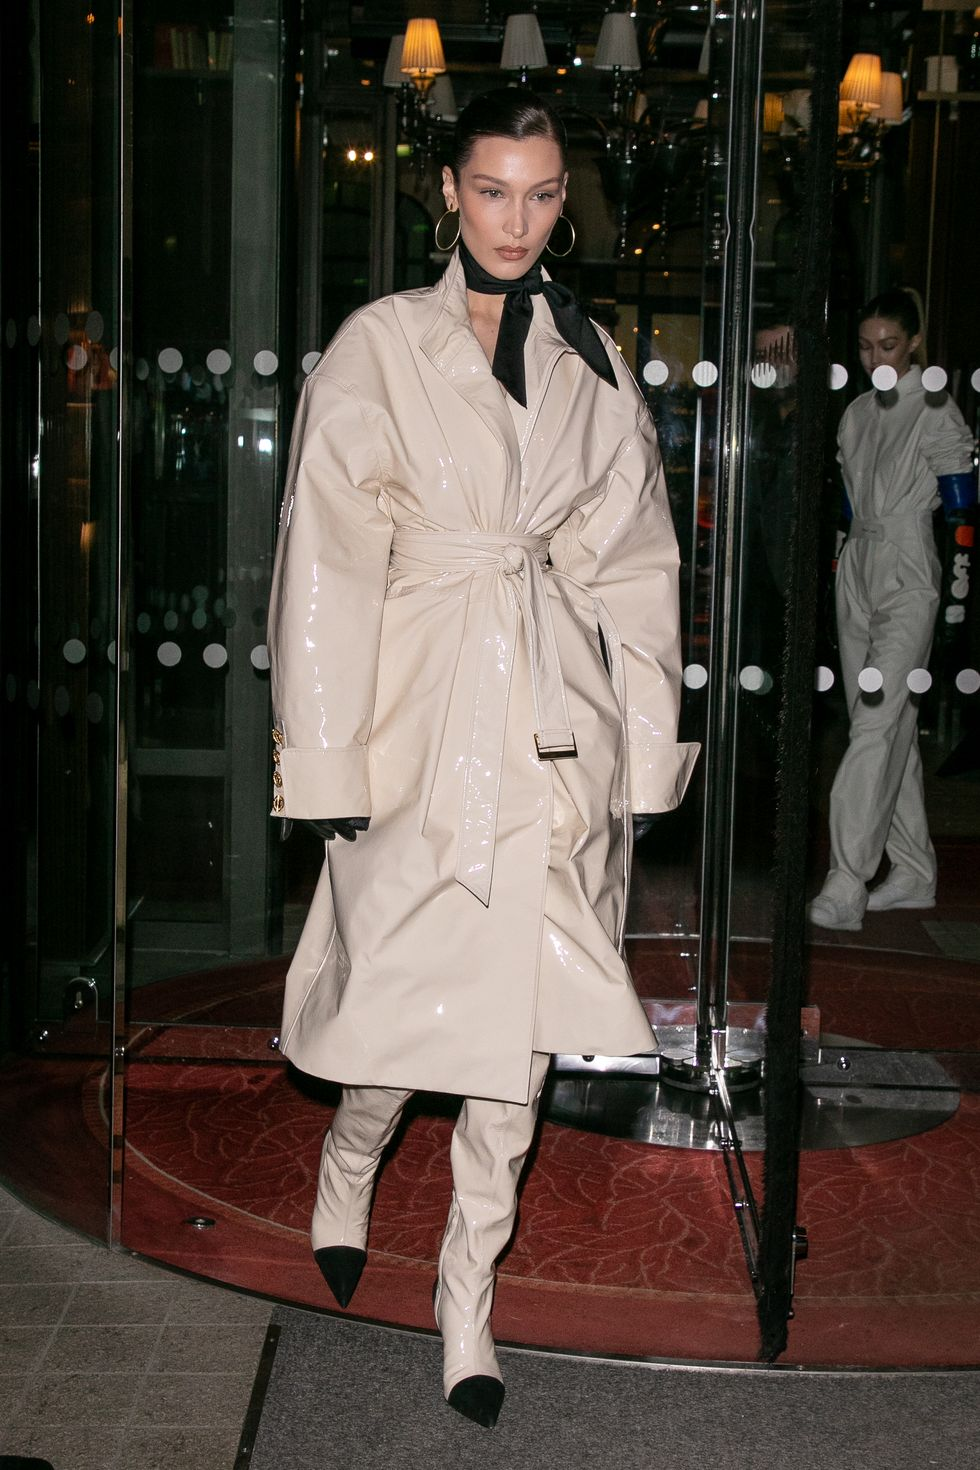 model-bella-hadid-is-seen-on-march-01-2019-in-paris-france-news-photo-1568305319